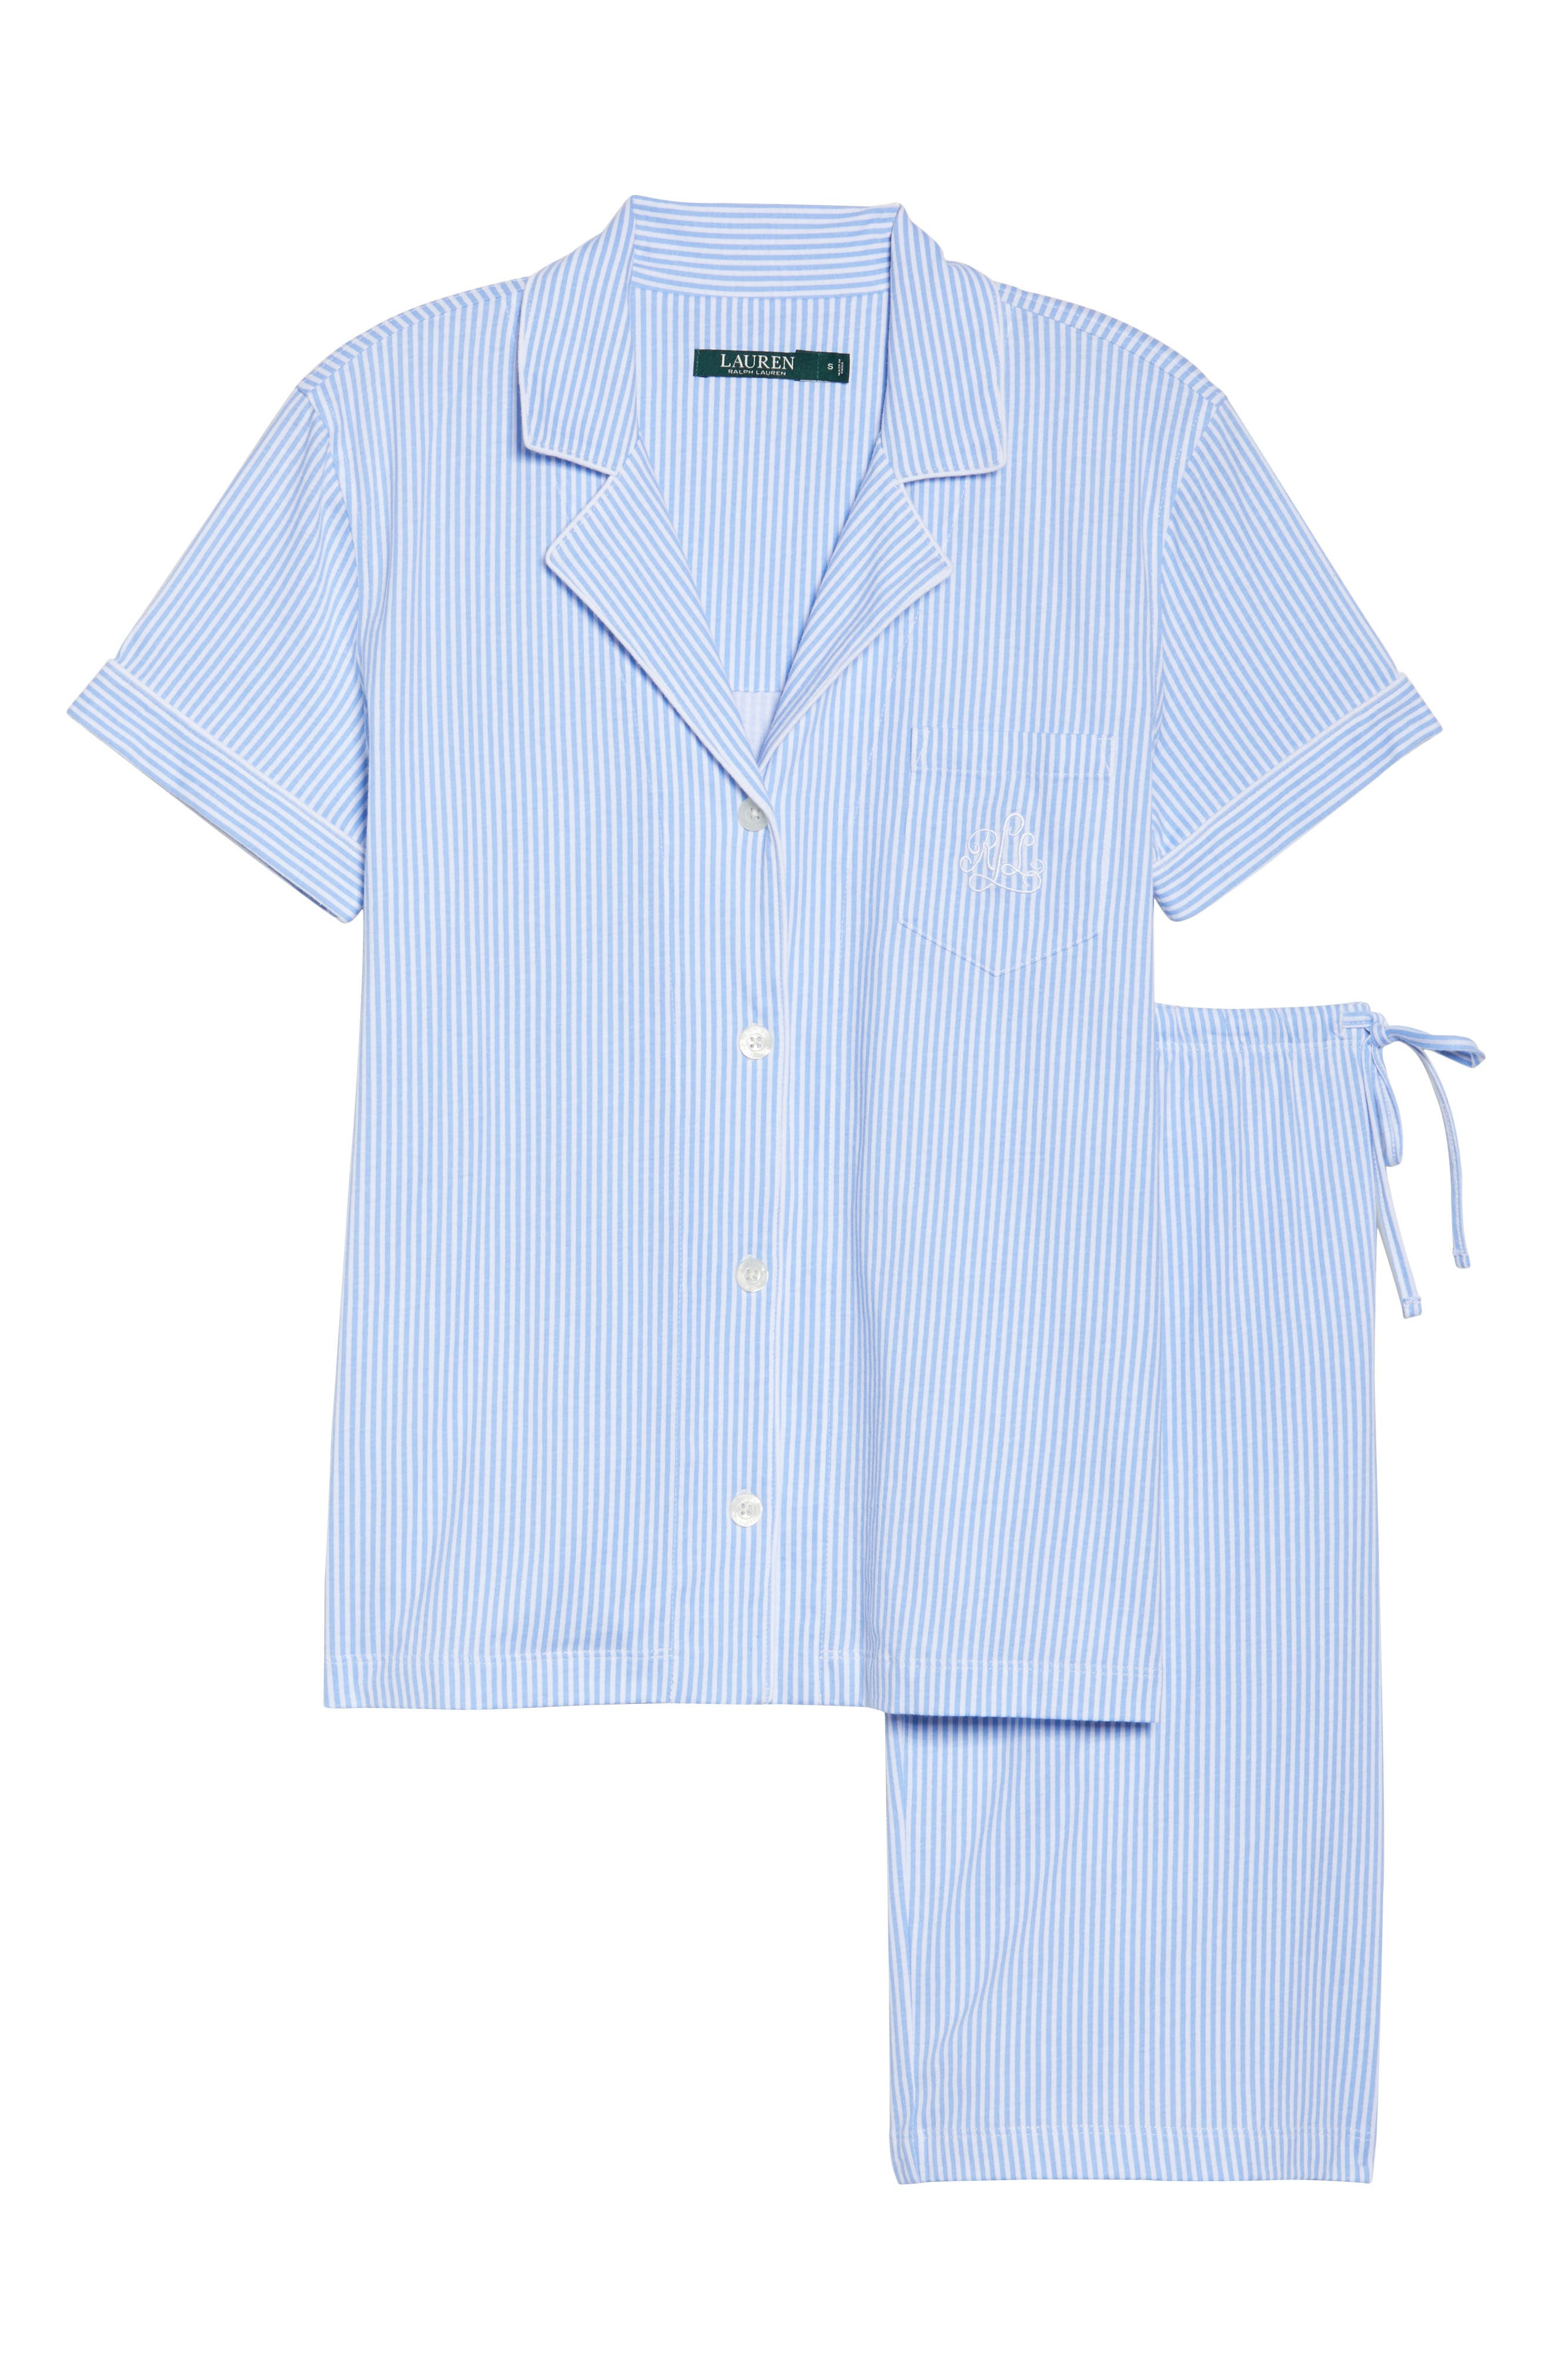 Bermuda Pajamas,                             Alternate thumbnail 6, color,                             Feather Blue Stripe